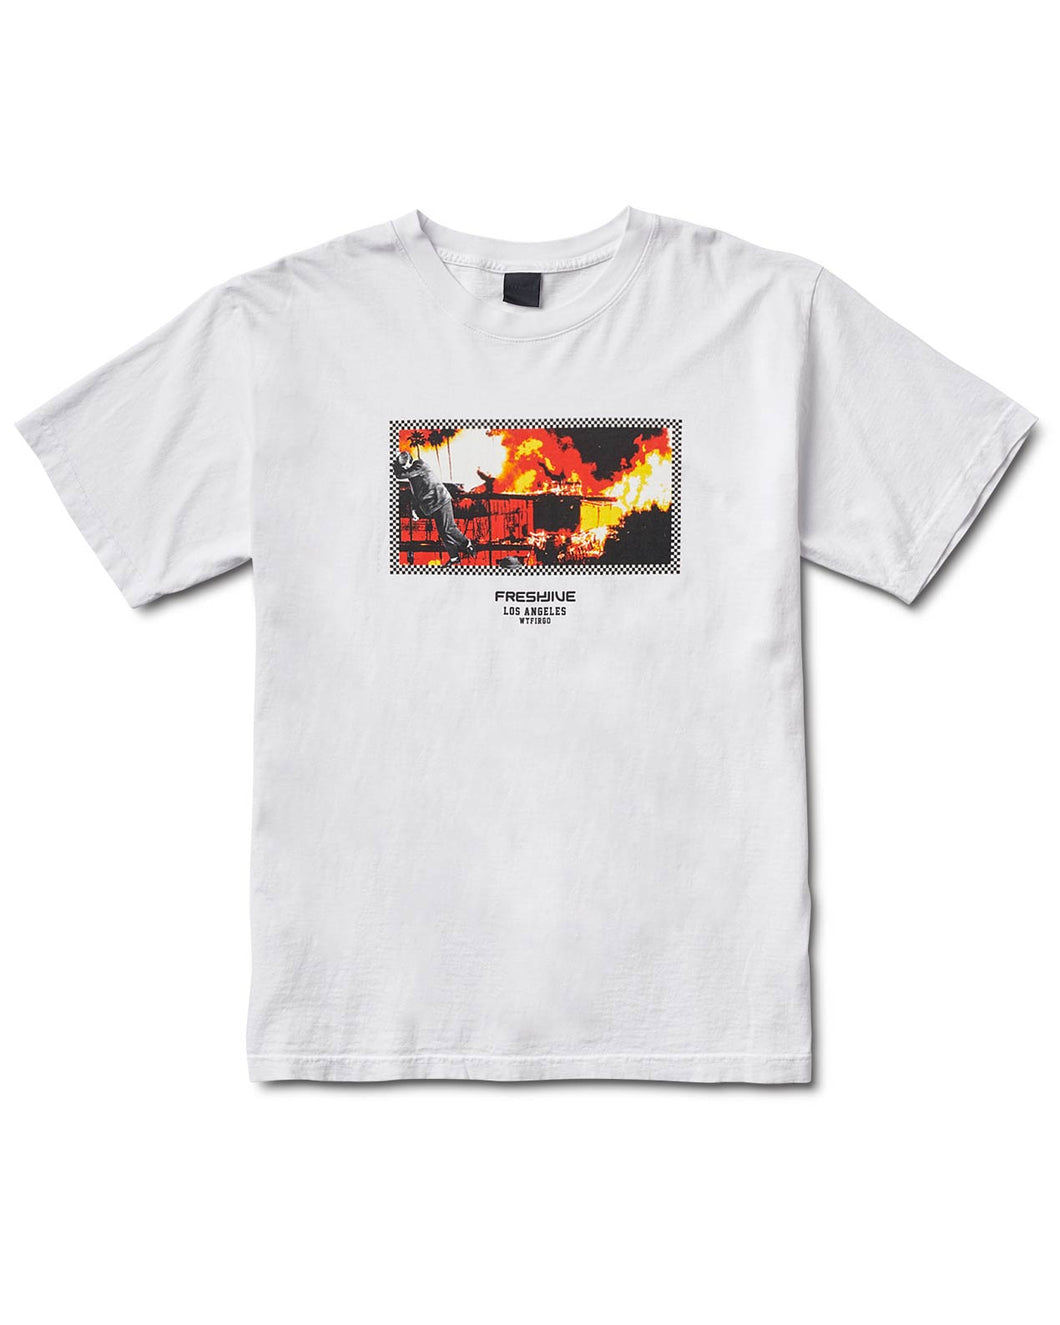 L.A. On Fire Tee White